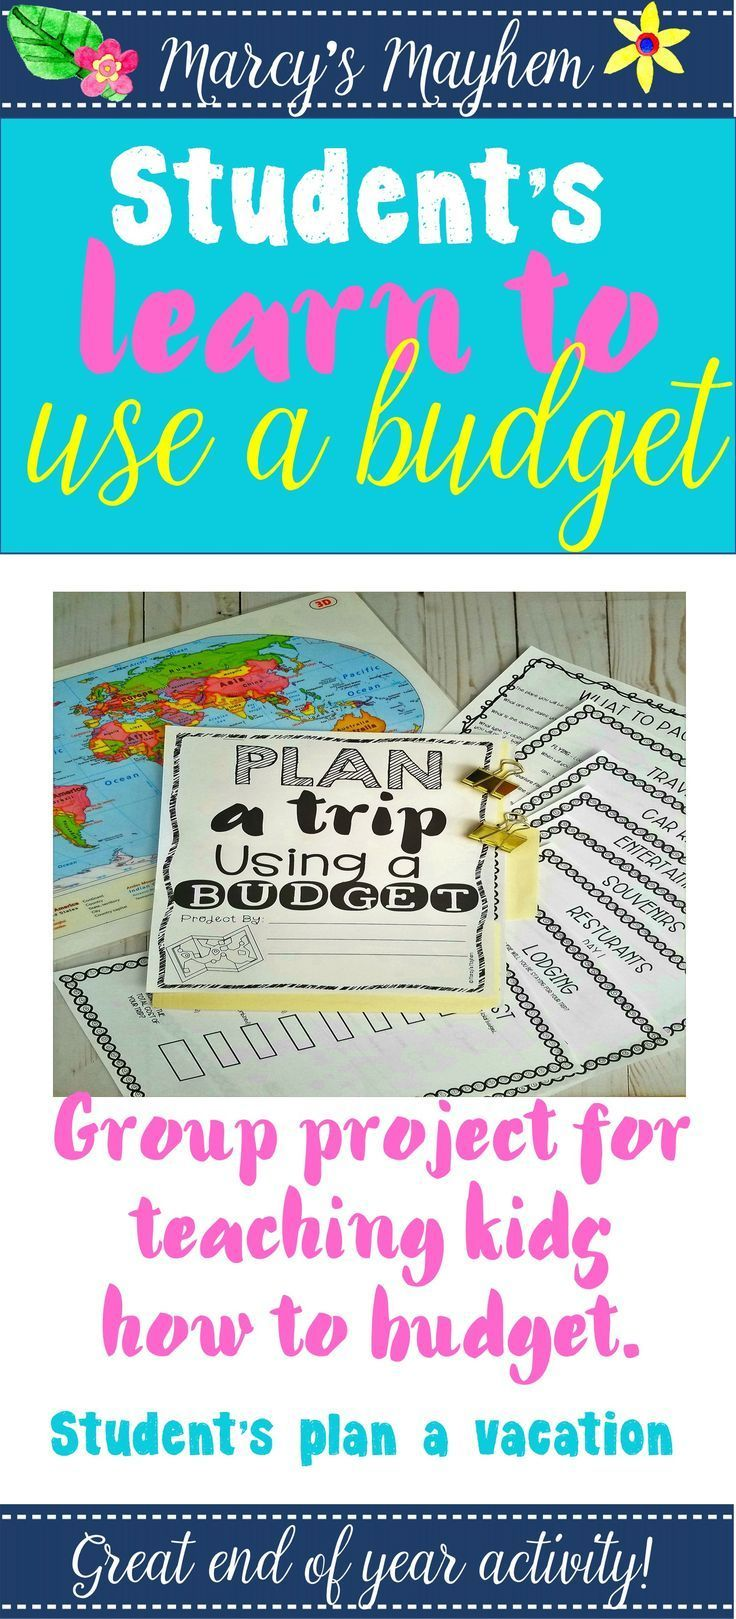 budgeting project